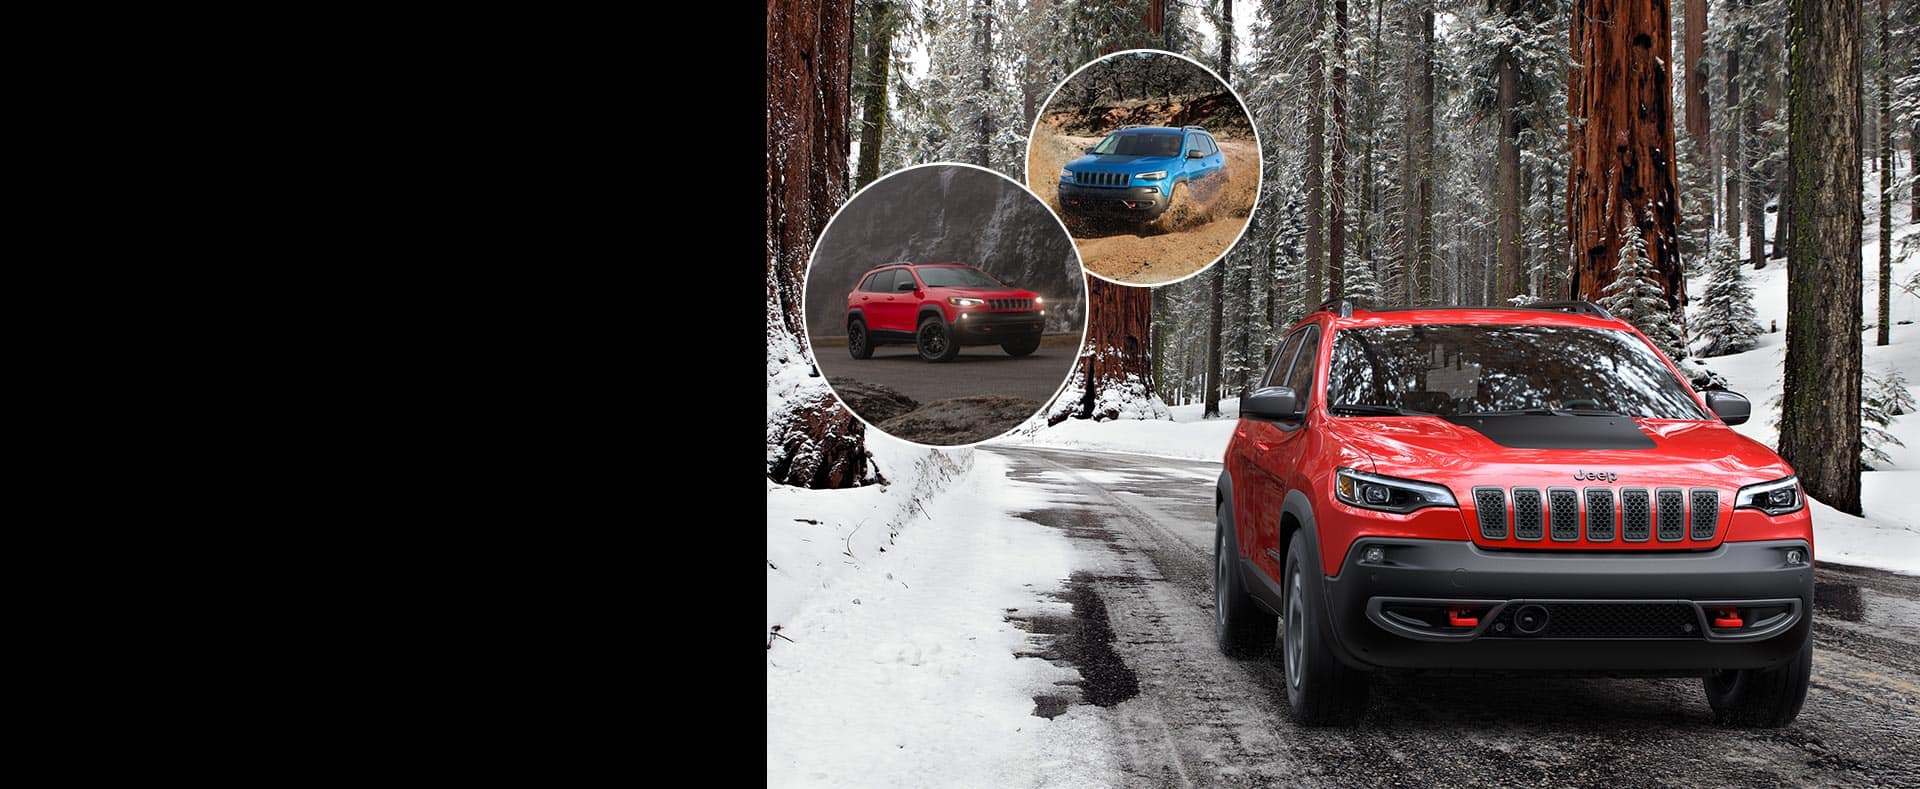 Left image: Jeep Cherokee parked with headlamps on. Center image: Jeep Cherokee being driven in muddy terrain. Right Image: Jeep Cherokee being driven in a snowy forest.